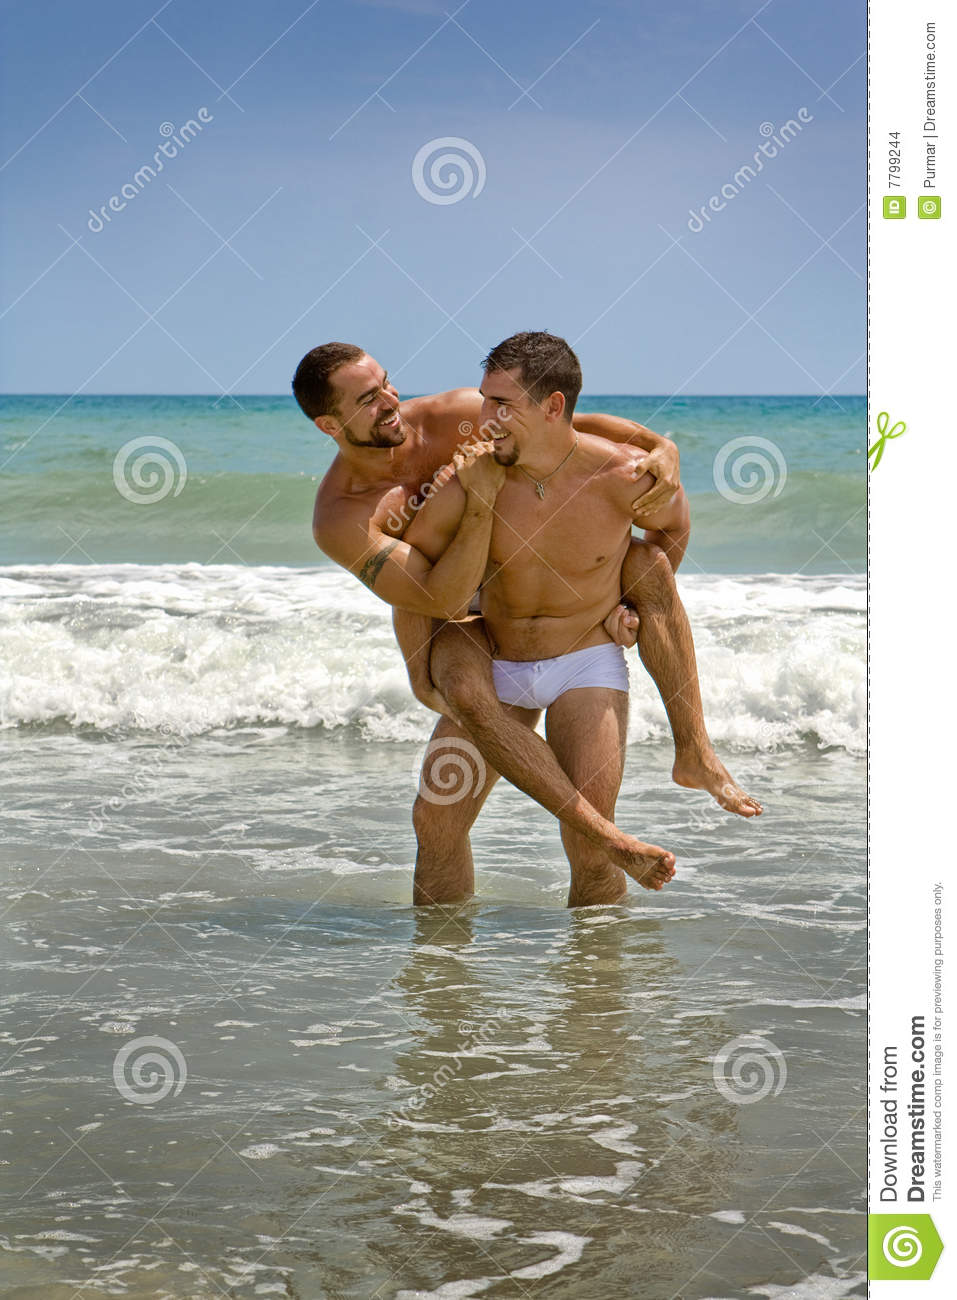 from Emery gay stock images